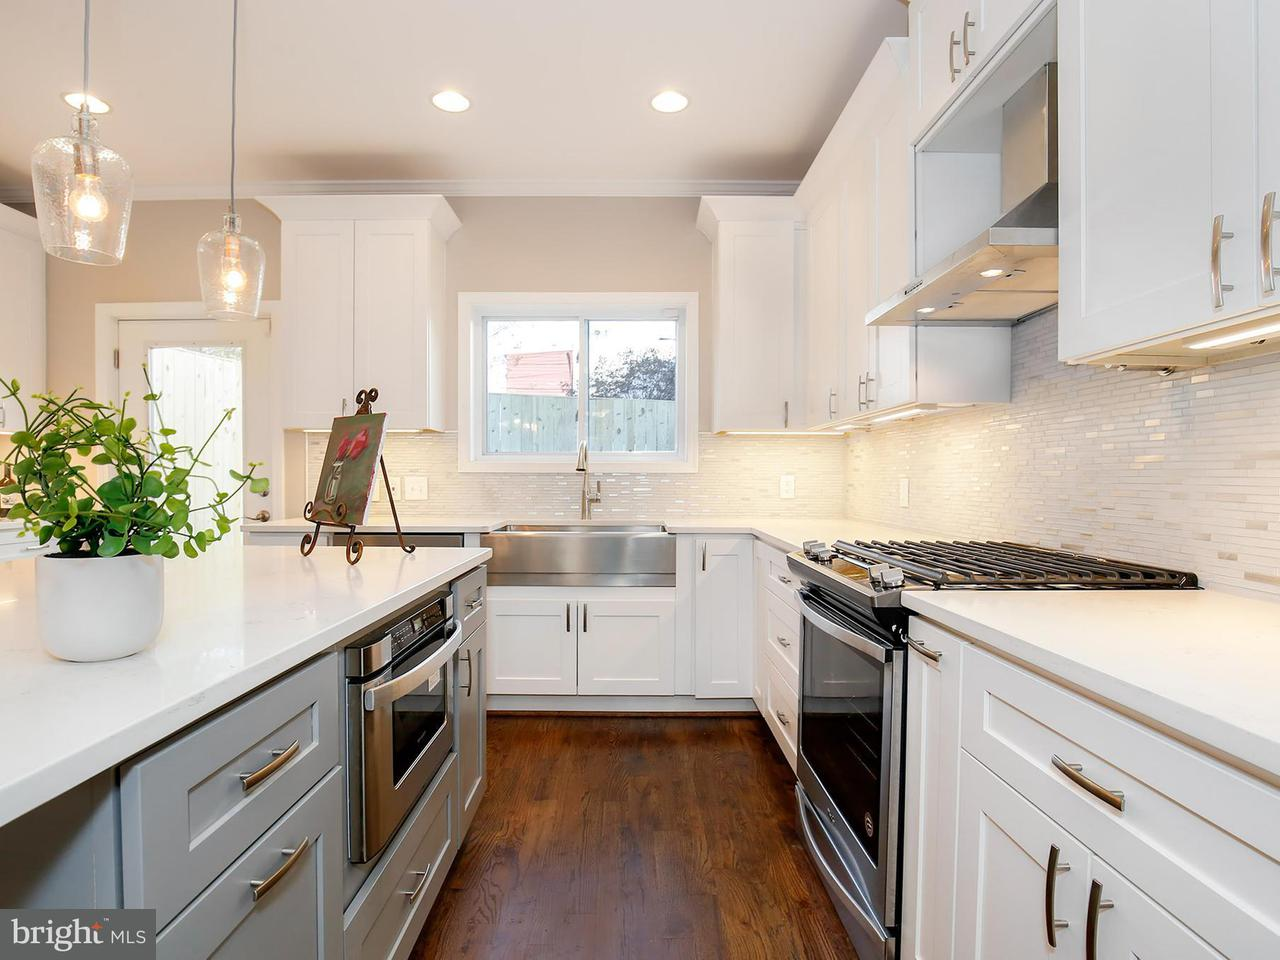 Additional photo for property listing at 340 14th St Se 340 14th St Se Washington, District Of Columbia 20003 United States